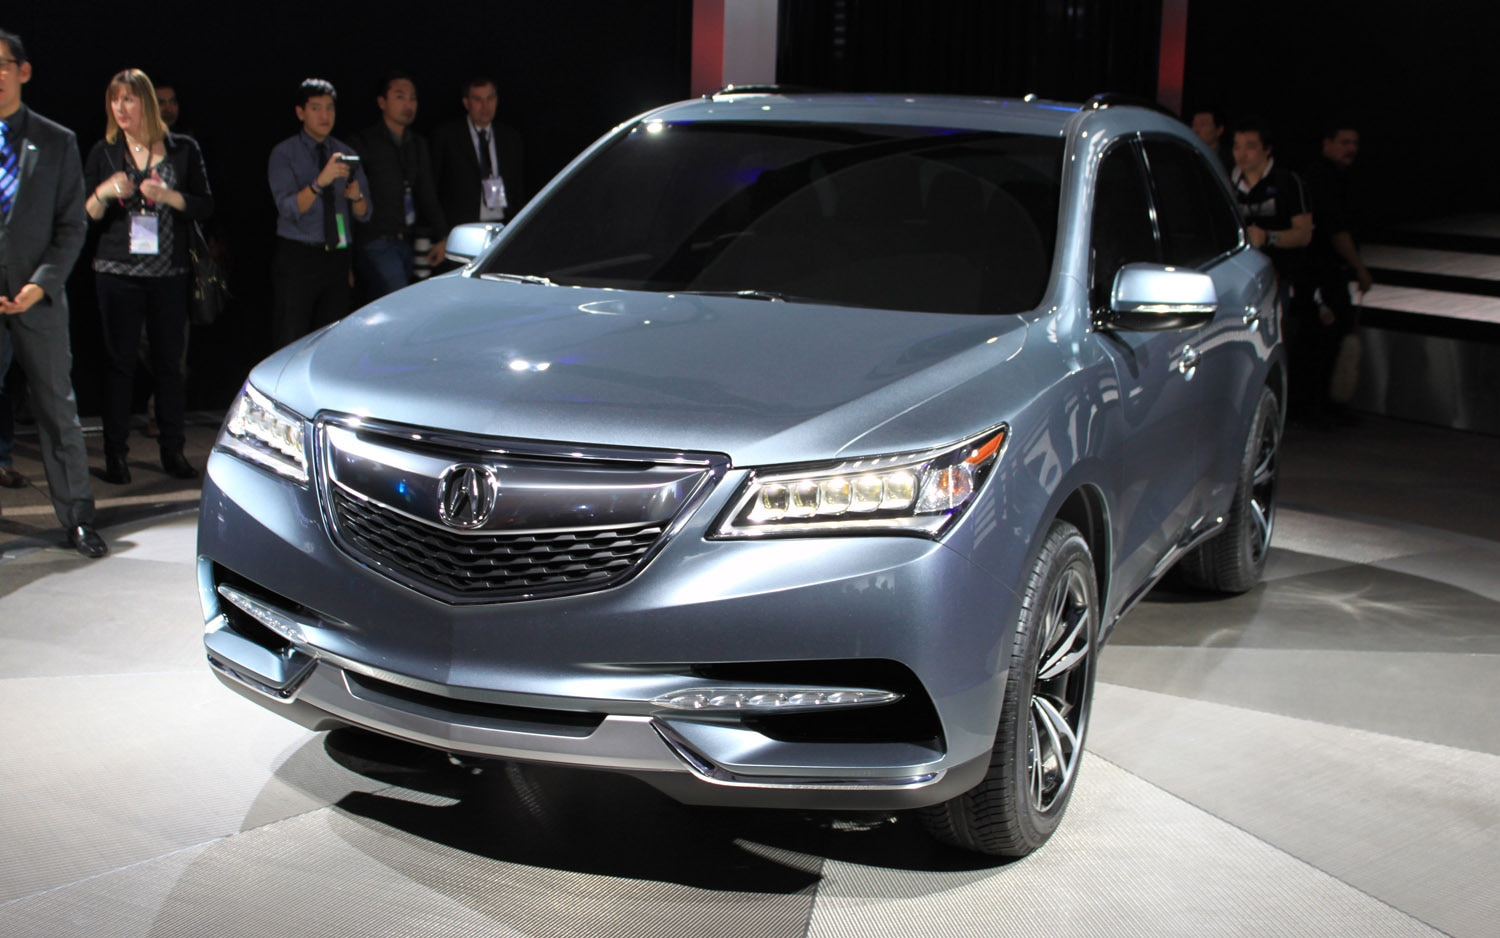 detroit 2013 2014 acura mdx prototype cuts a clean path. Black Bedroom Furniture Sets. Home Design Ideas